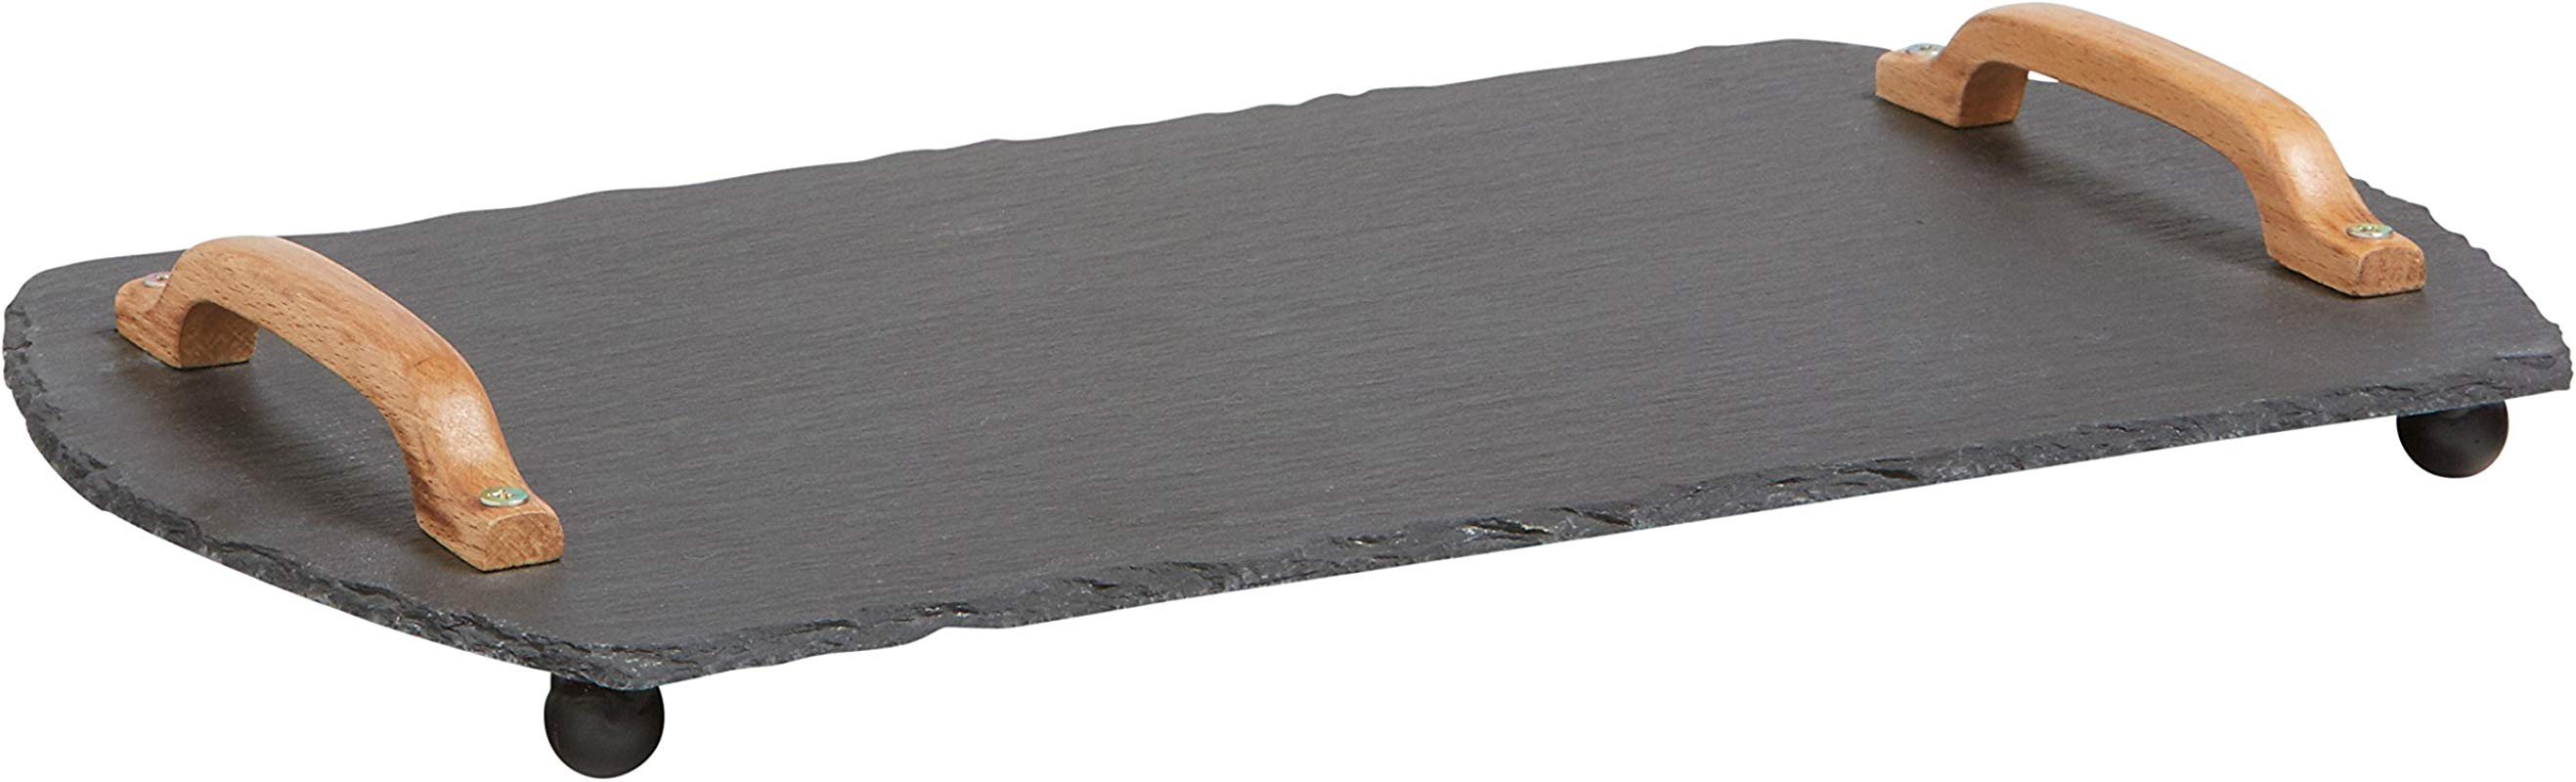 Rivet Modern Stone And Birch Natural Edge Serving Decor Tray 15 5 X 9 X 2 5 Inch Black And Wood